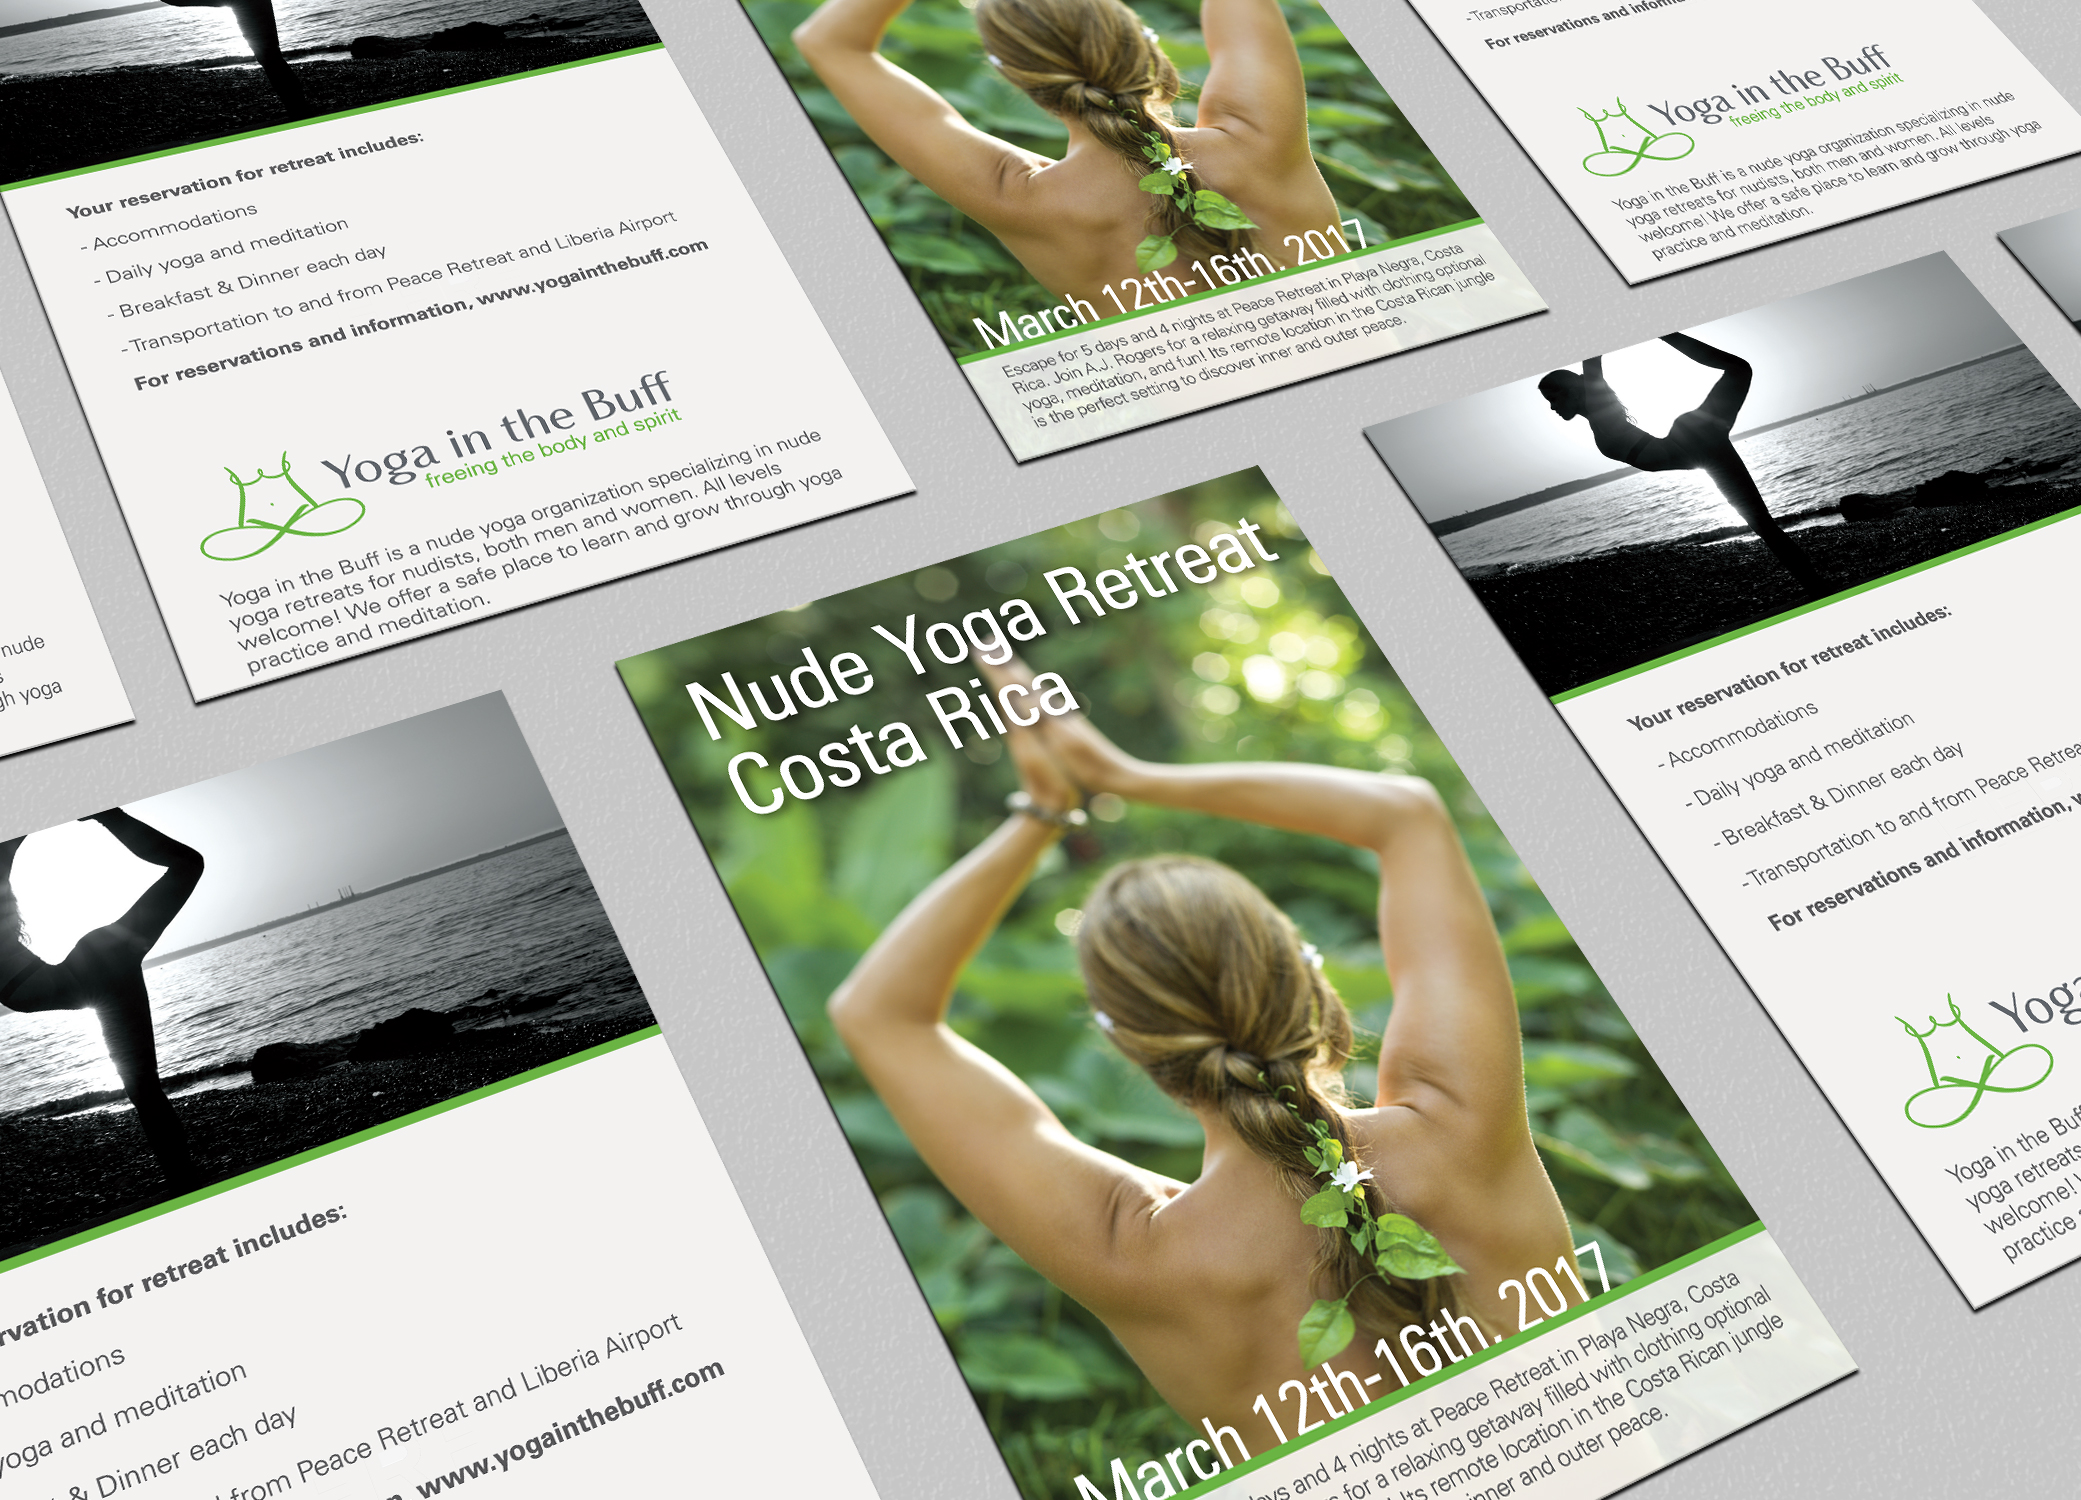 Yoga in the Buff logo flyer design for nude yoga retreat in Costa Rica, arranged in rows showing front and back.